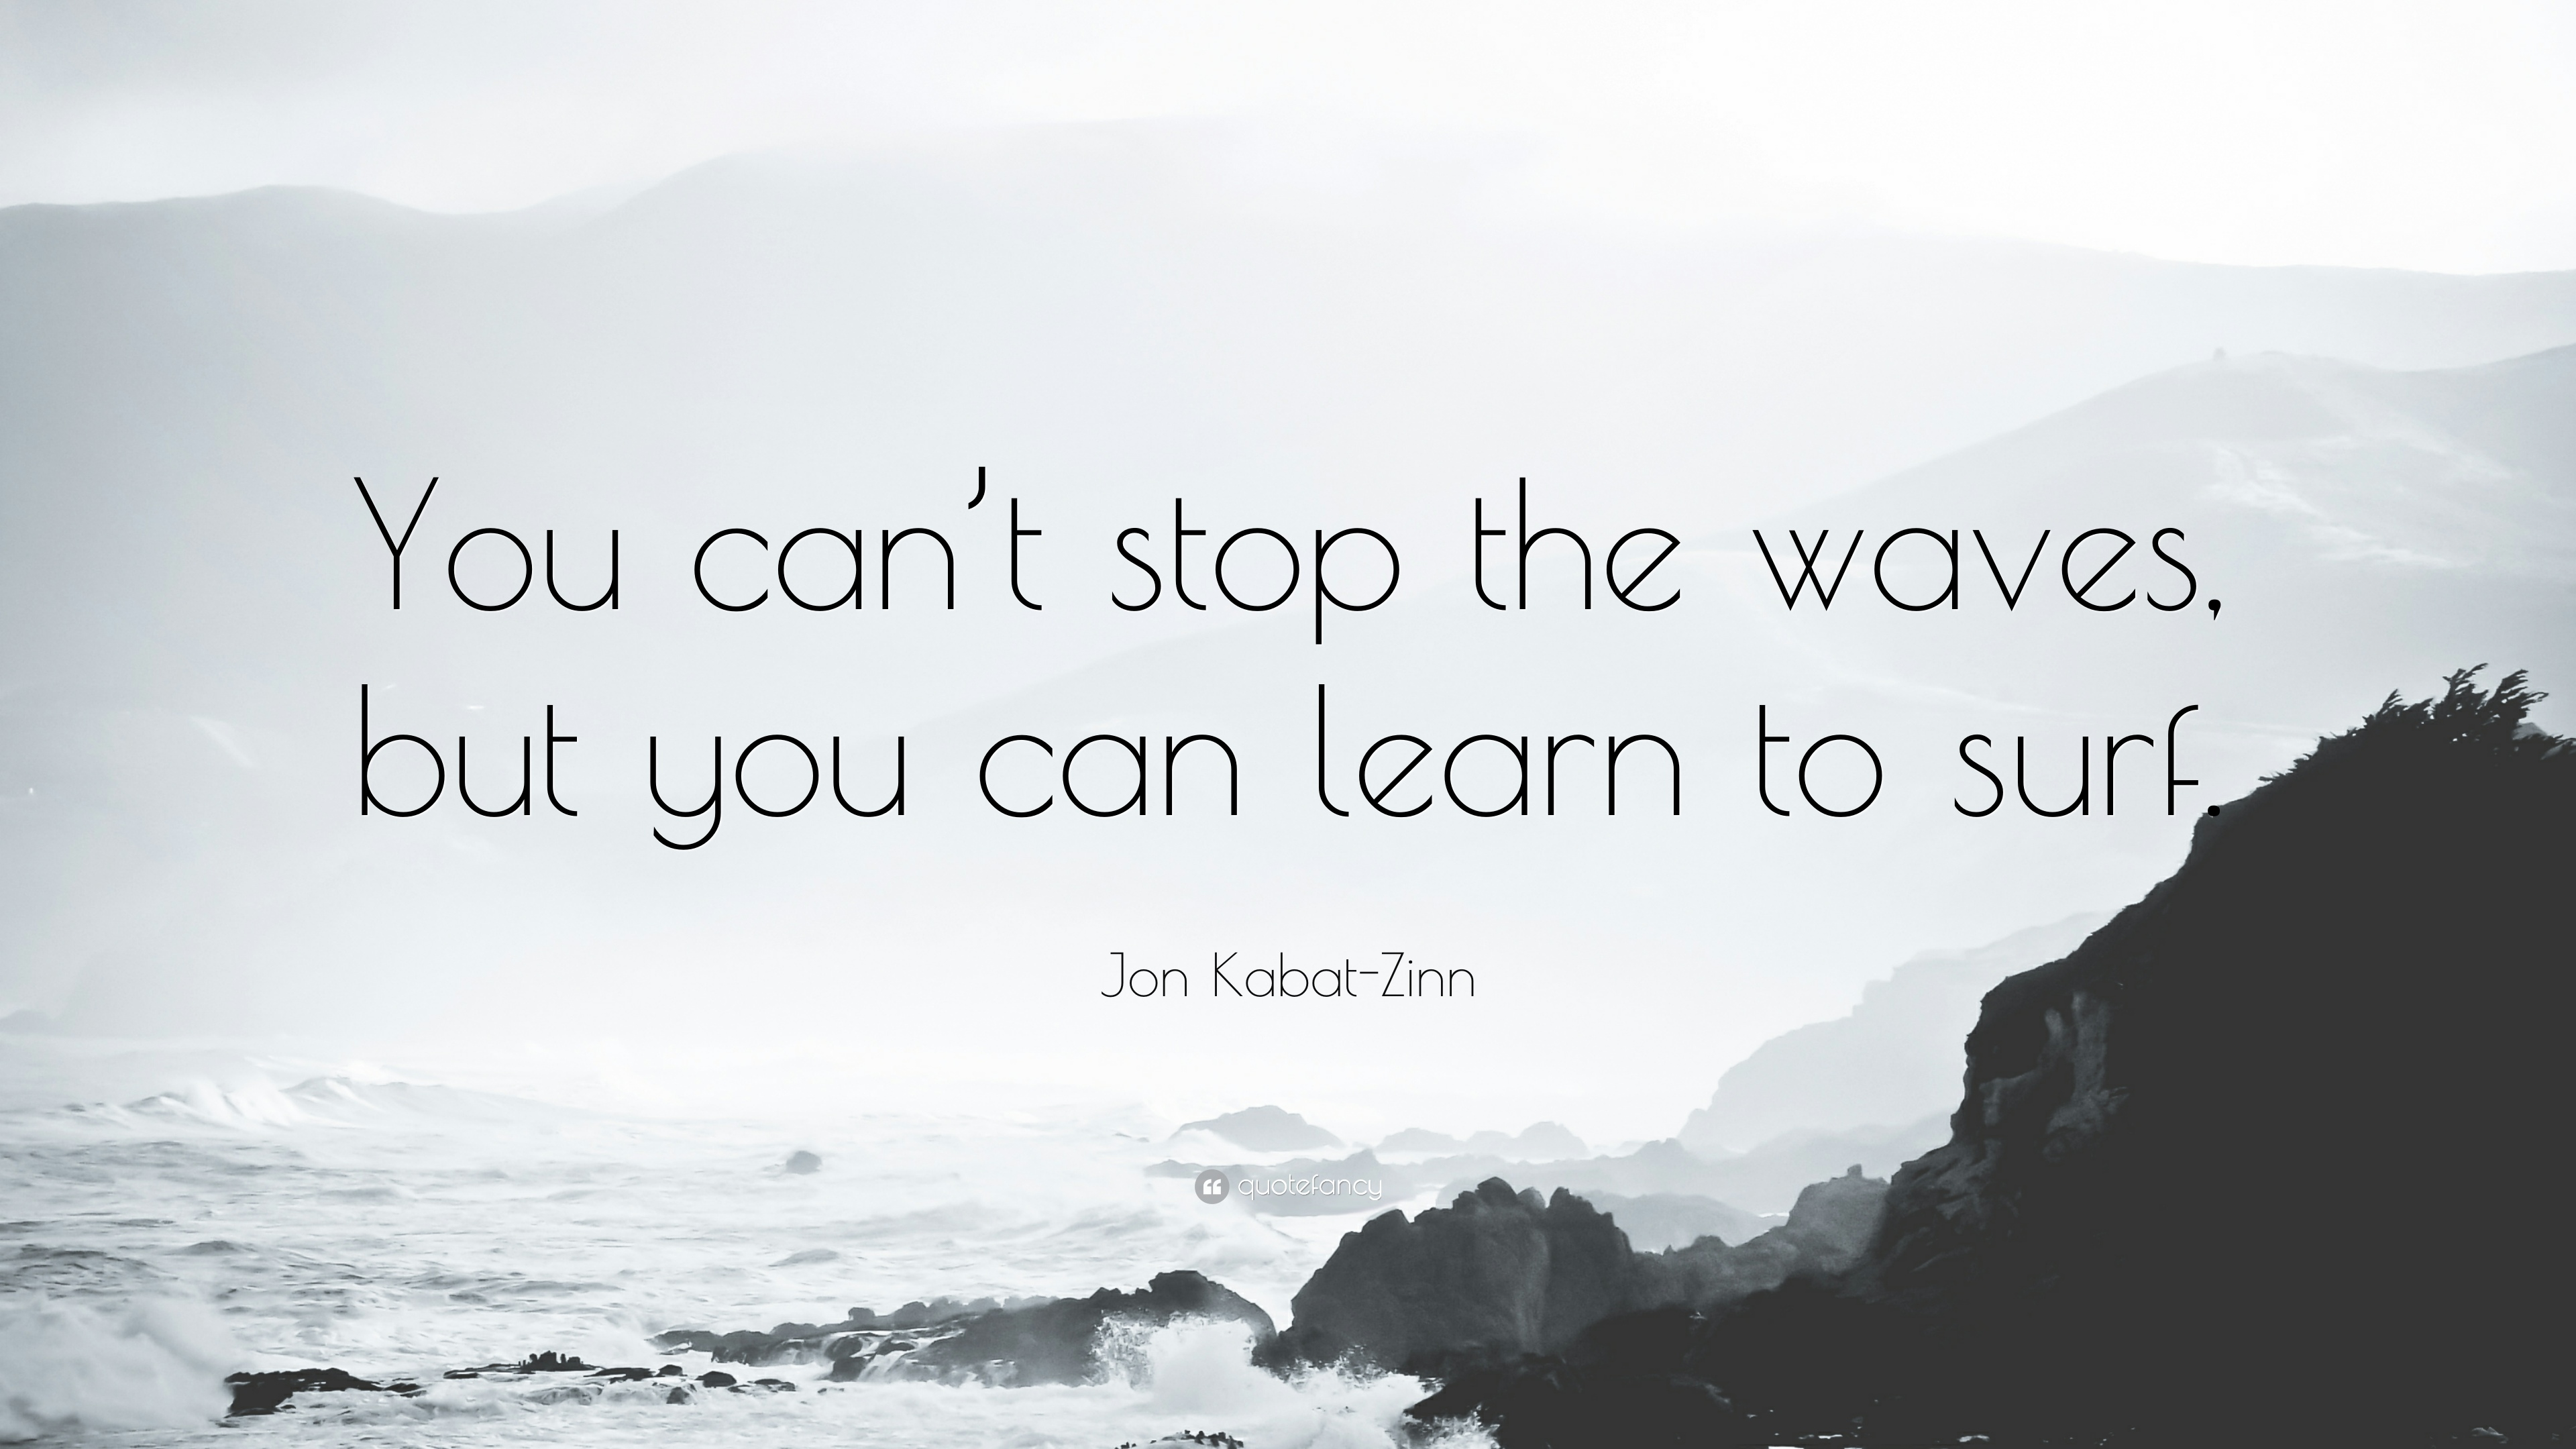 Afbeeldingsresultaat voor you can't stop the waves but you can learn to surf